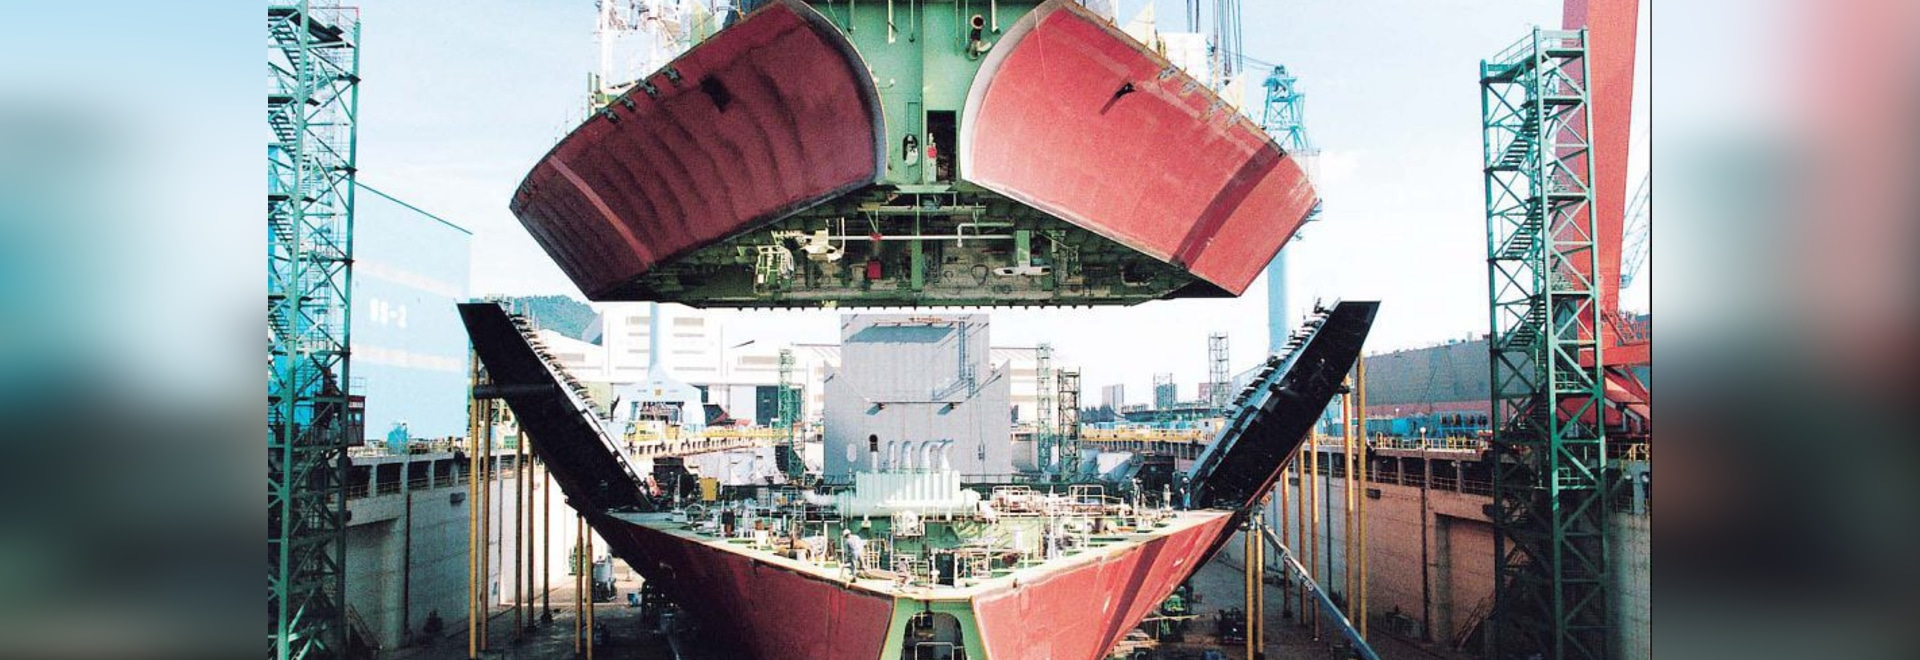 Clarksons: Shipyards' Forward Cover Drops to 2.3 Years